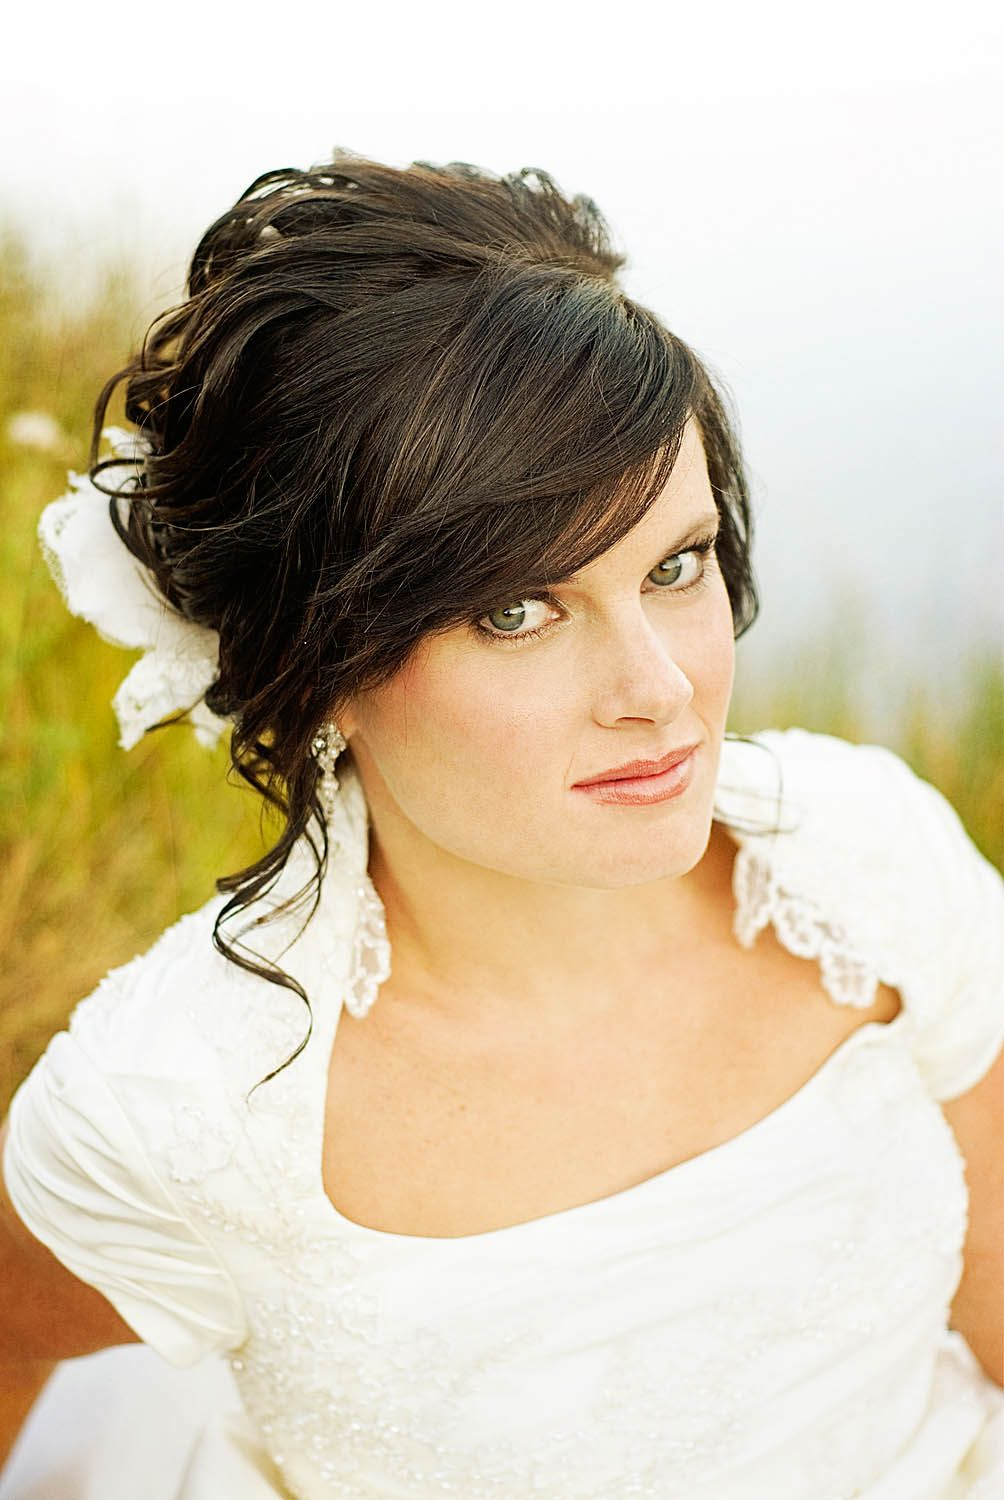 wedding-hairstyles-with-braids-and-bangs-hair-and-make-up-by-steph--how-to-incorporate-your-bangs-into-your.jpg (1004×1500)